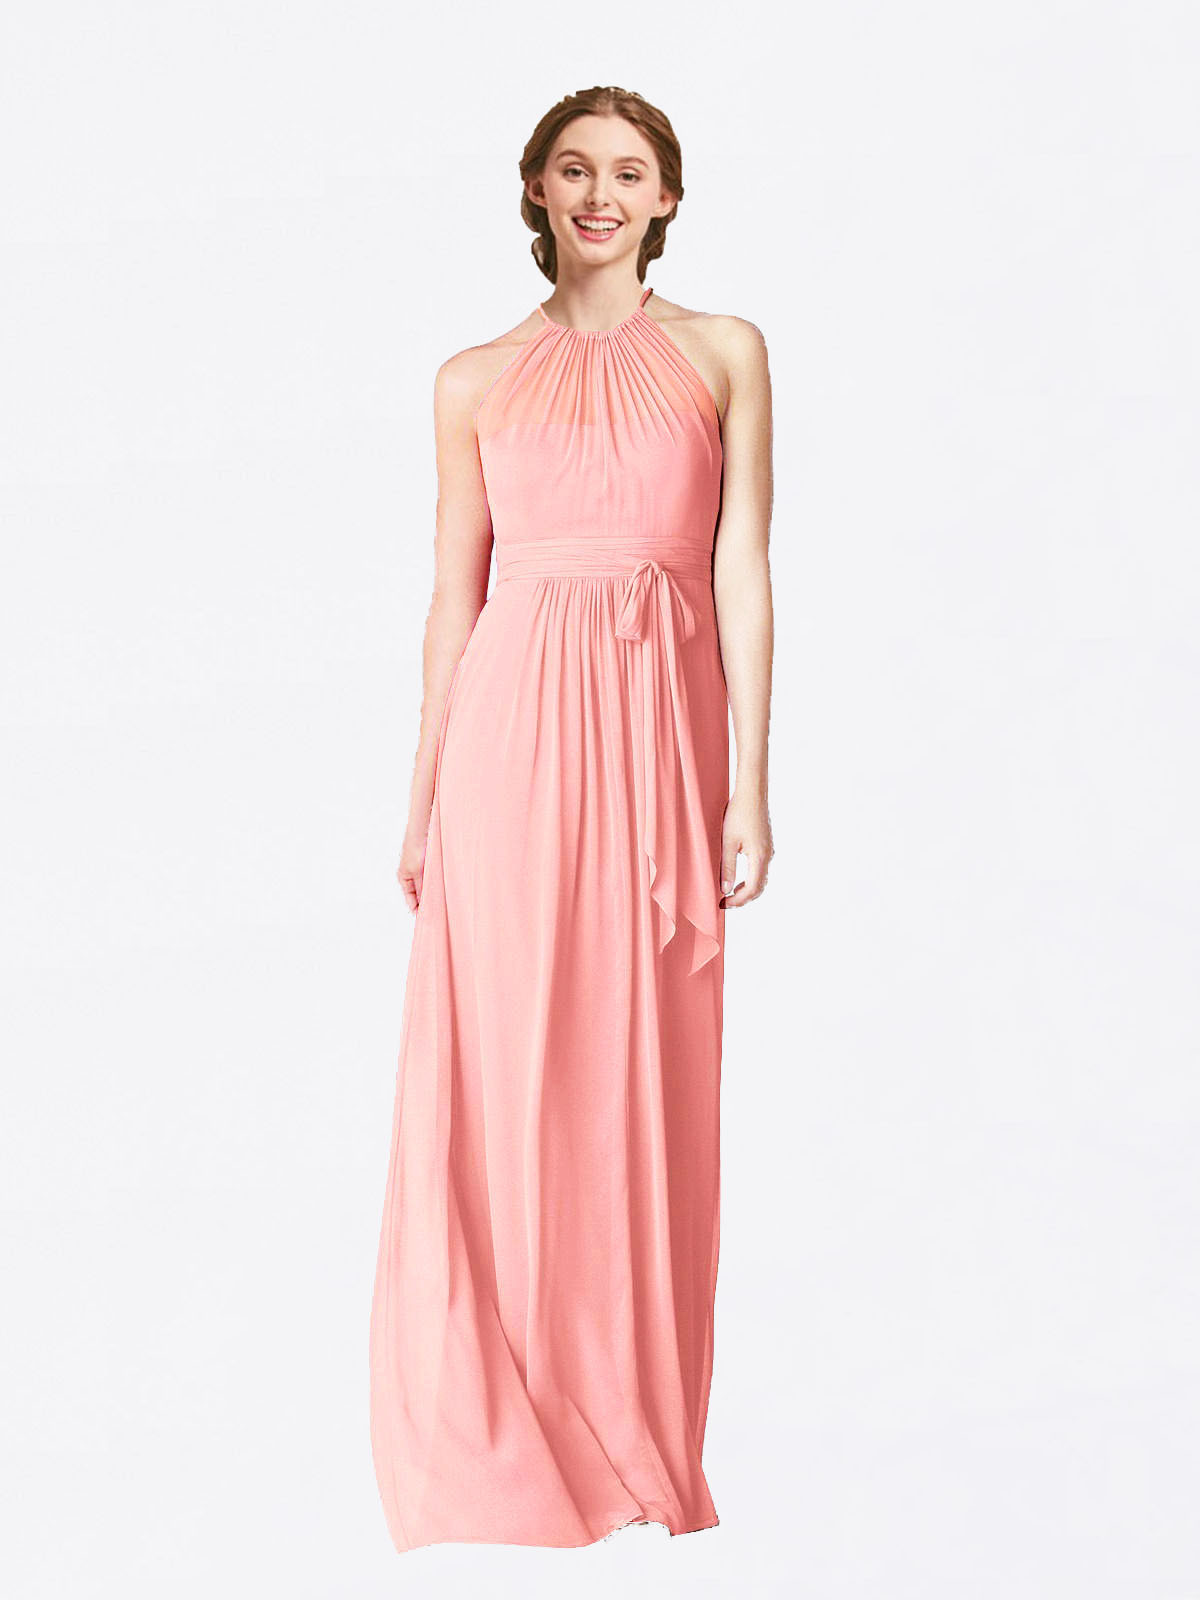 Long A-Line Halter Sleeveless Salmon Chiffon Bridesmaid Dress Laura